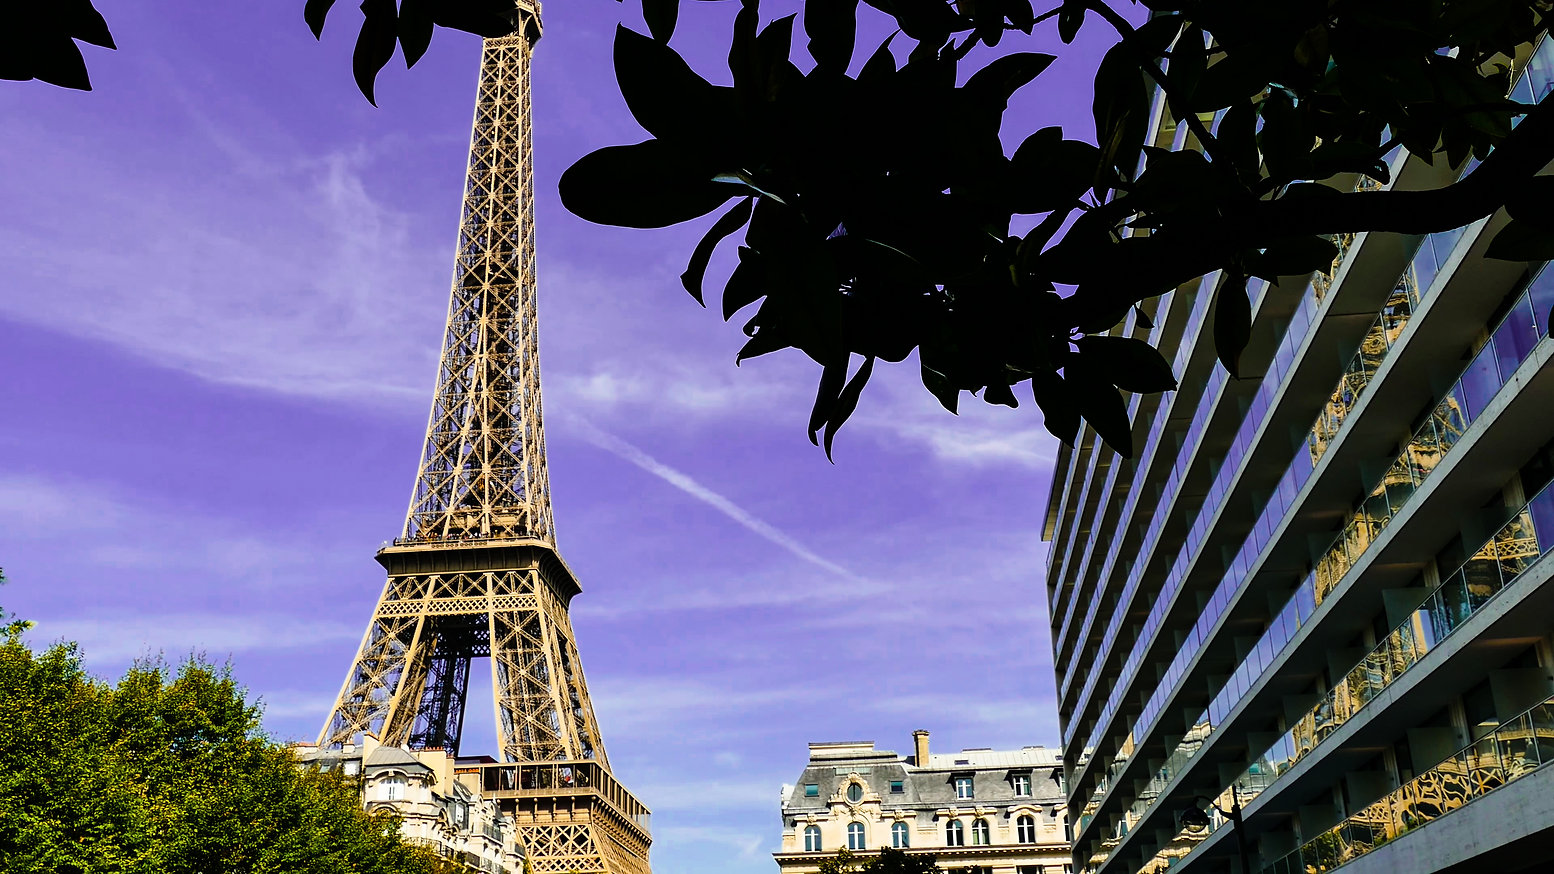 Beautiful view of famous Eiffel Tower in